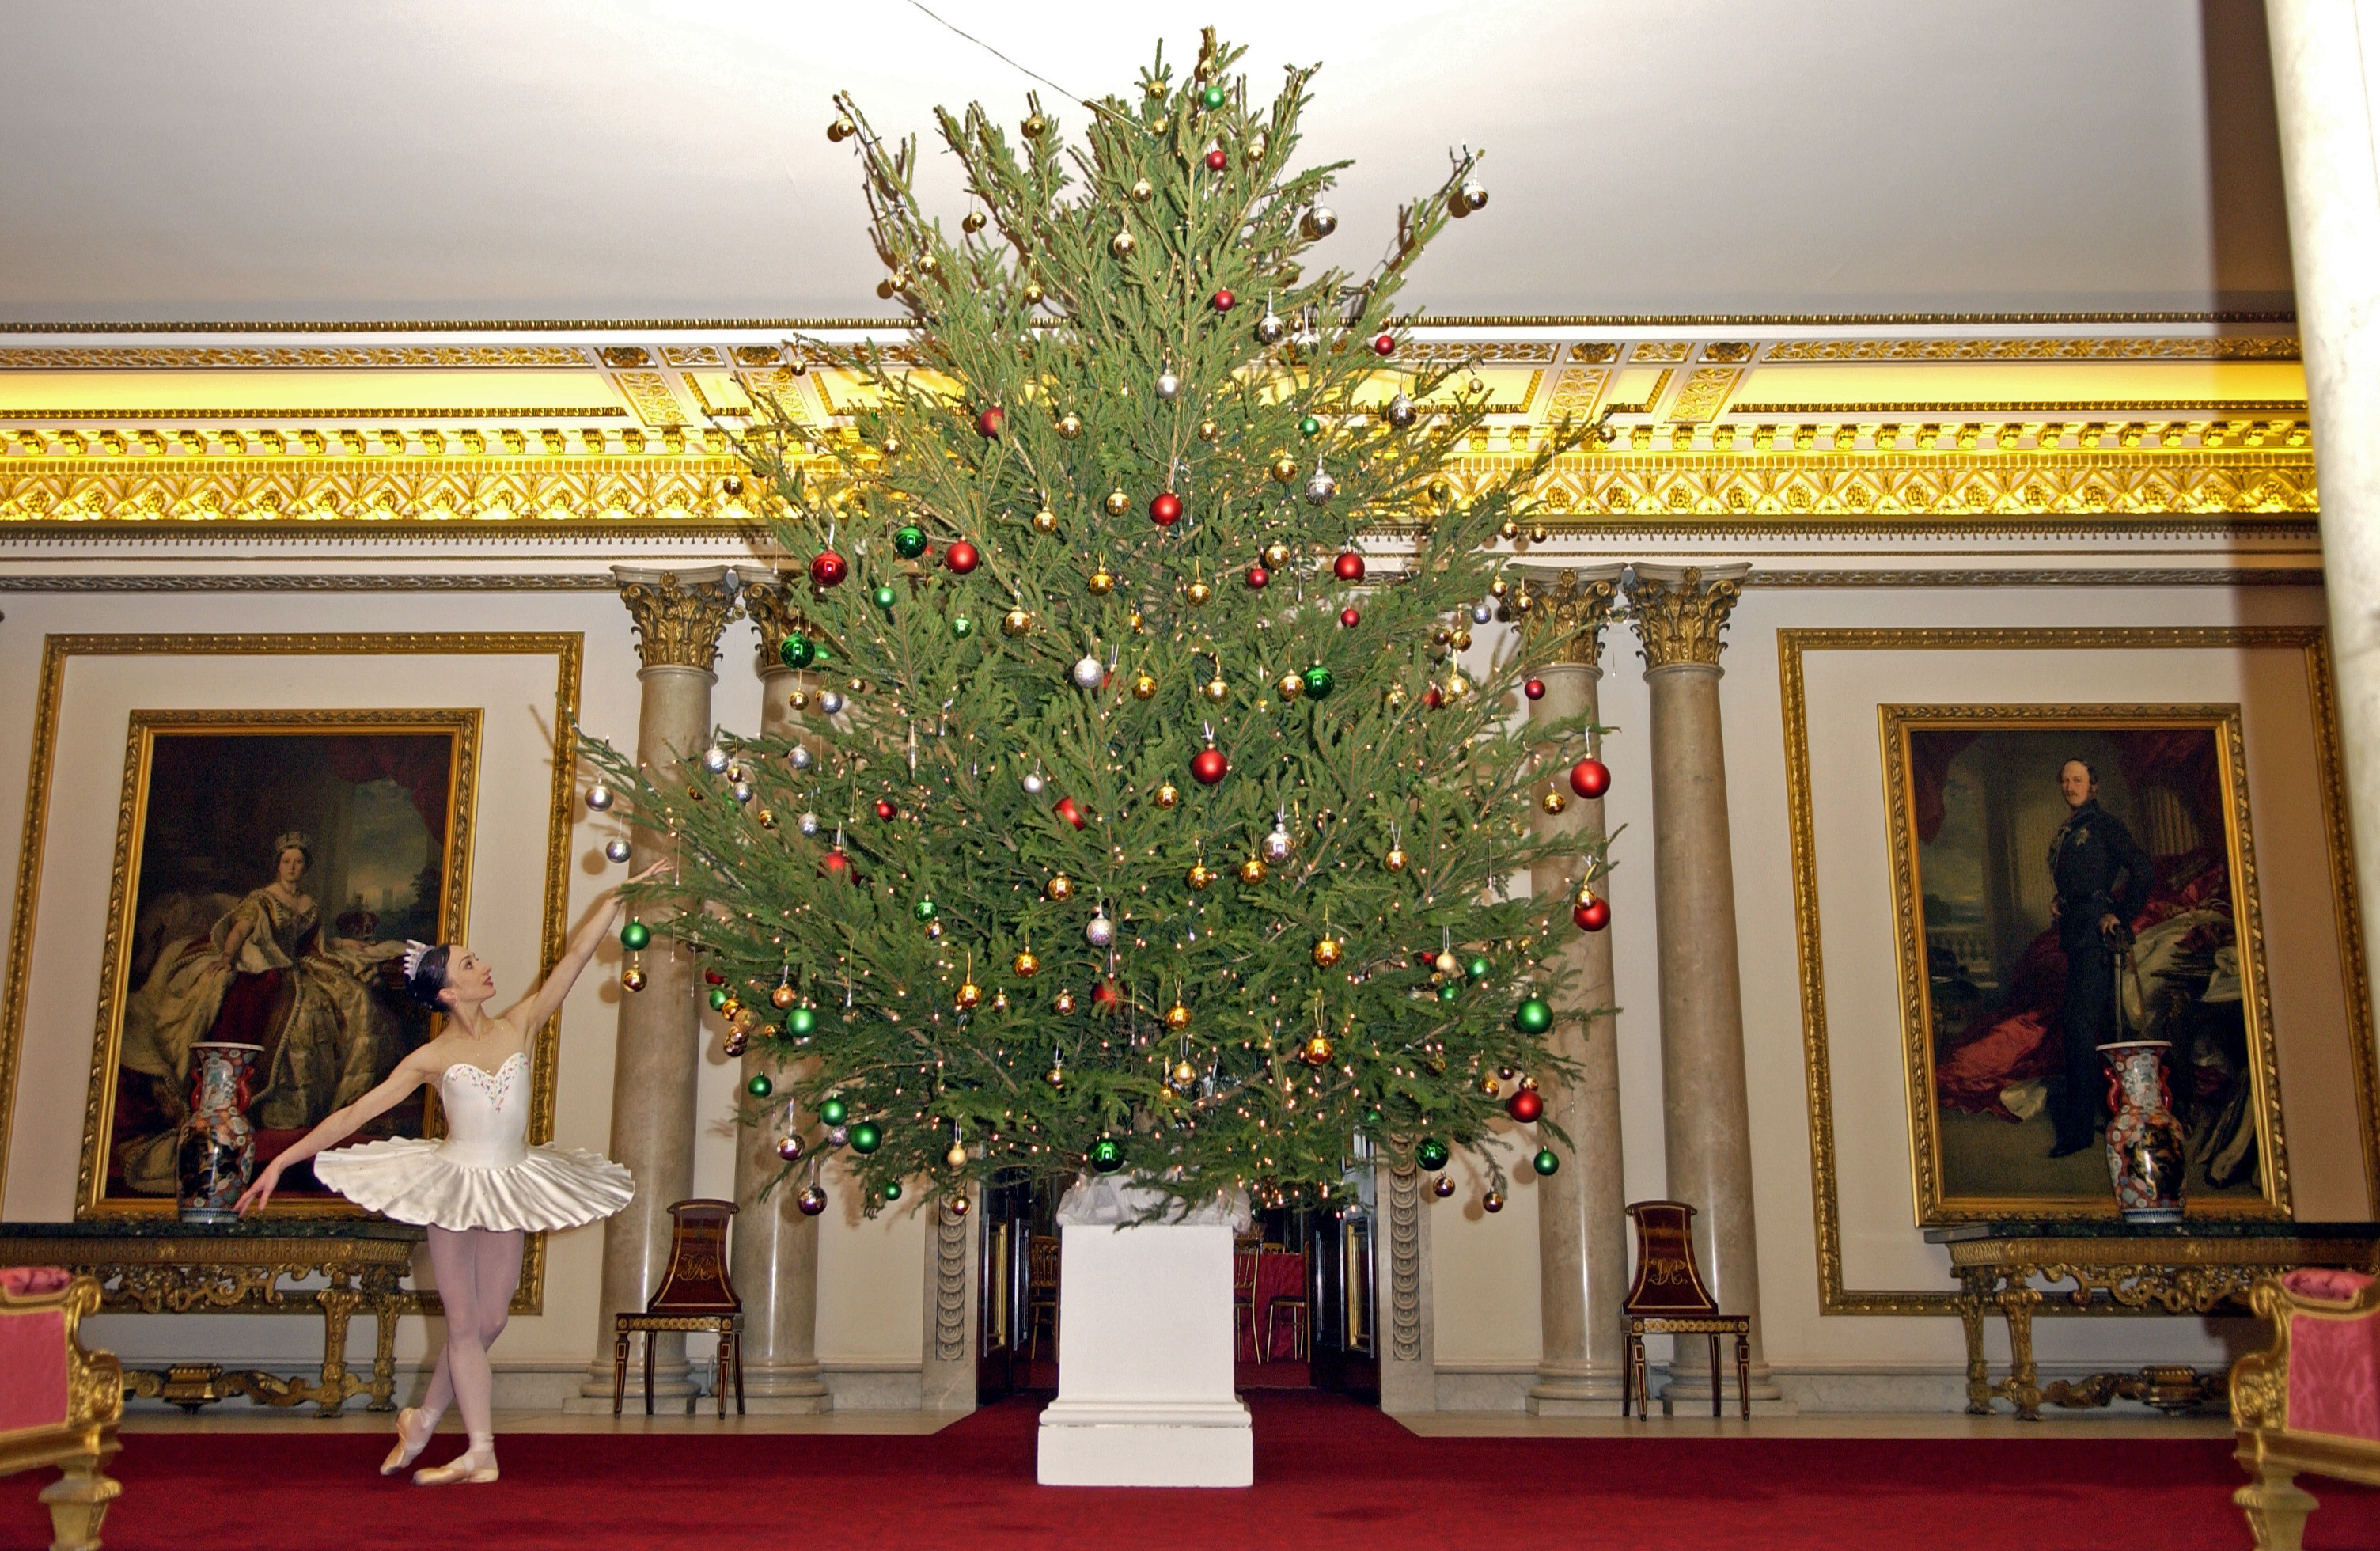 LONDON, UNITED KINGDOM - DECEMBER 14:  A Dancer From The English National Ballet, Dressed In Costume, Stands In Front Of A Christmas Tree At Buckingham Palace Whilst Attending A Christmas Tea  (Photo by Tim Graham Photo Library via Getty Images)